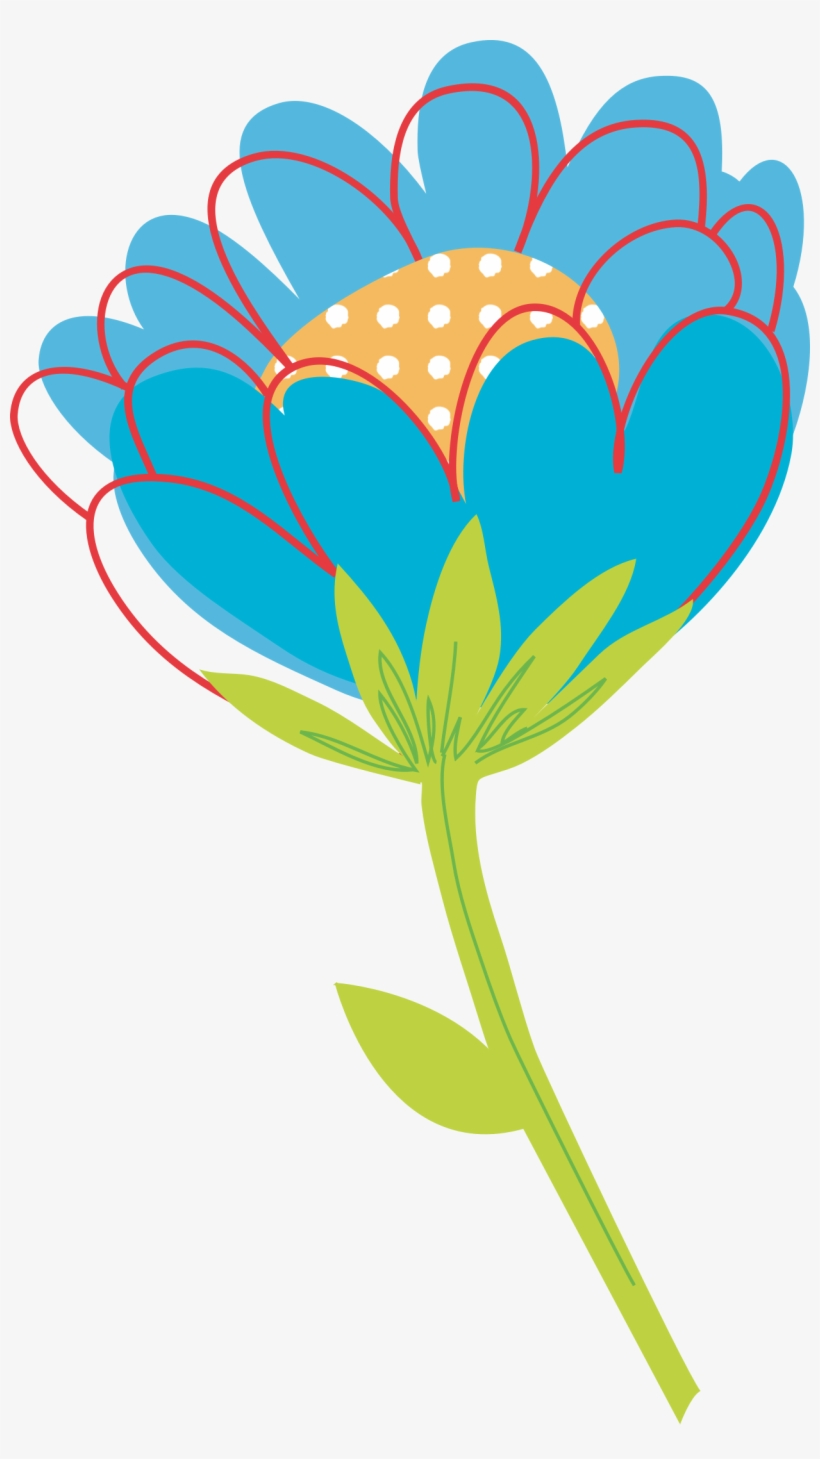 Blue Flower Clipart Big Flower - Flower Vector Png Png, transparent png #251221